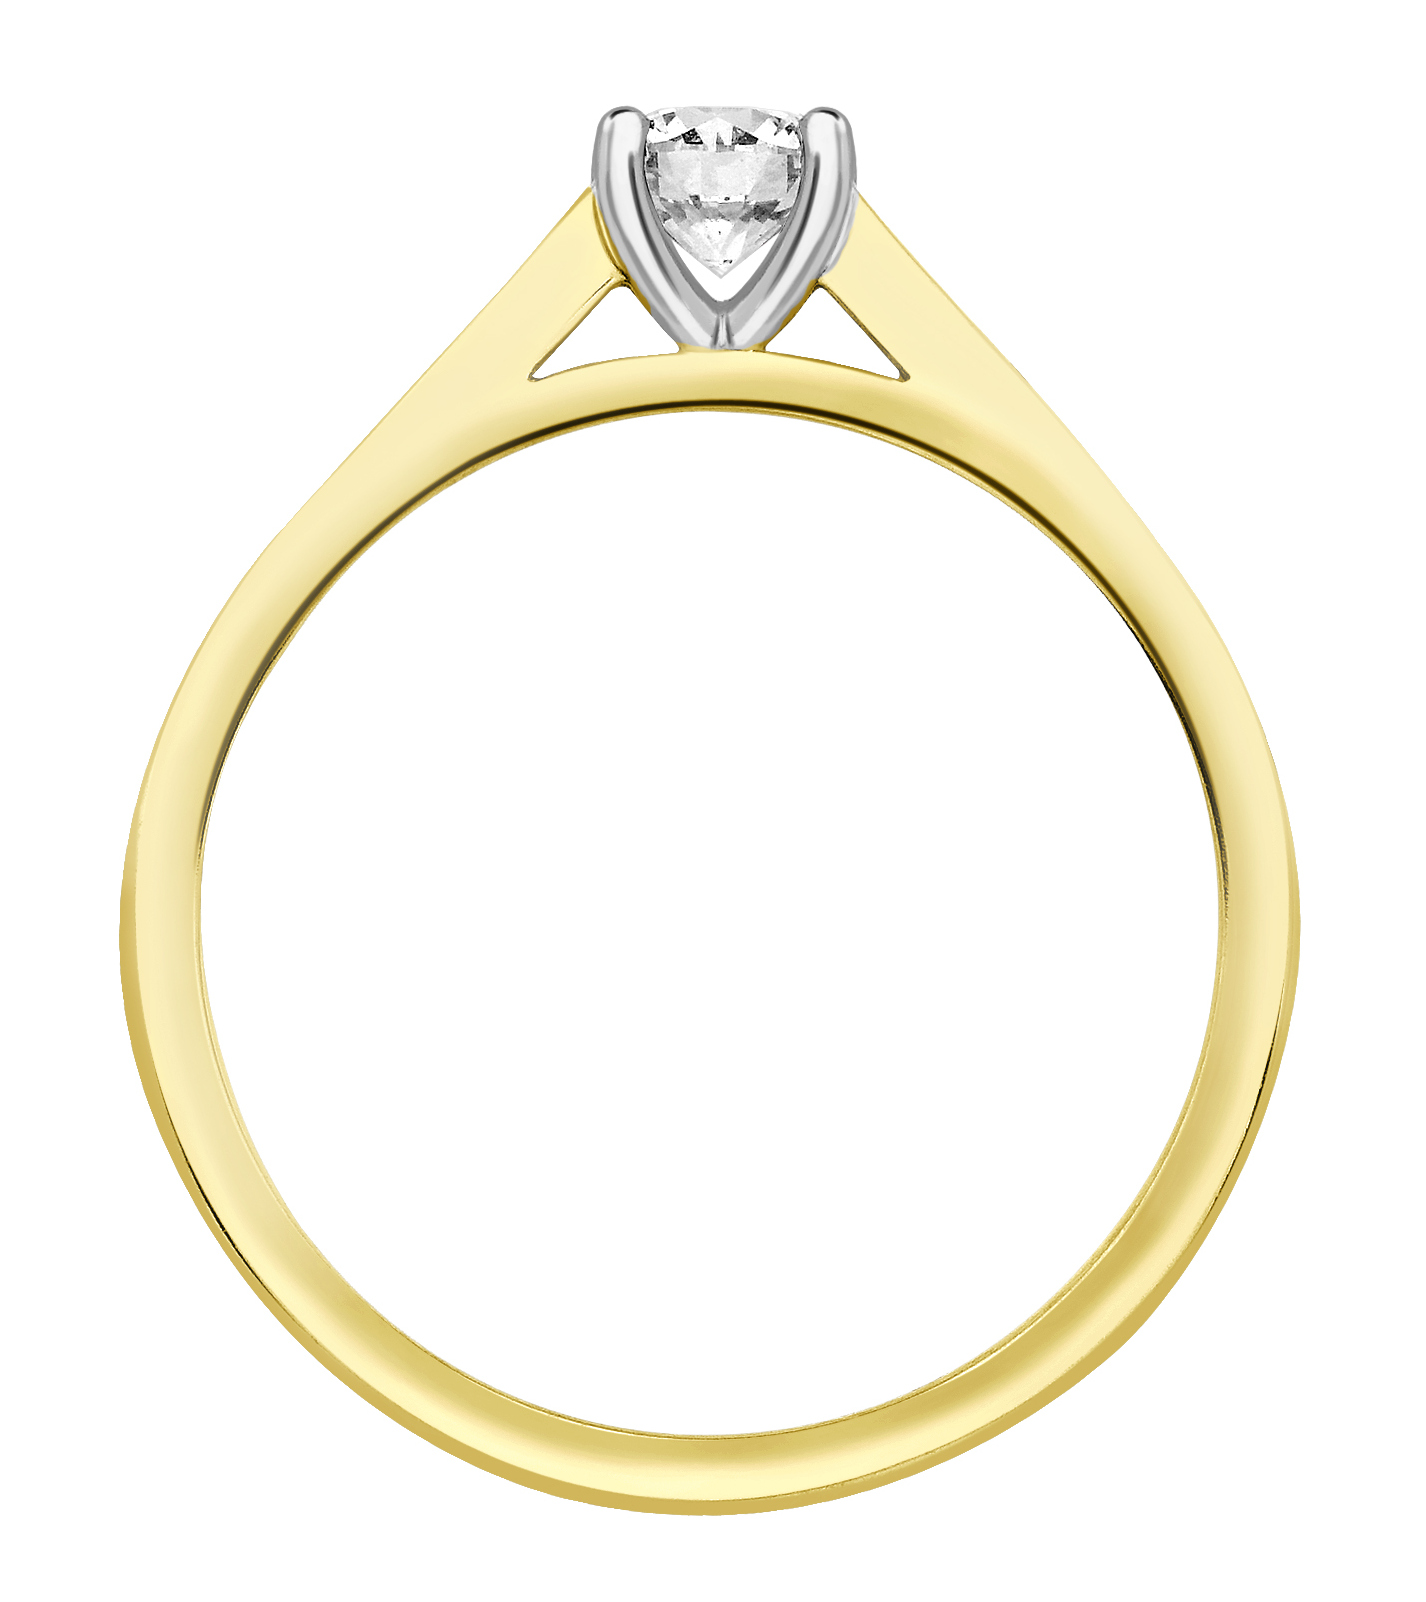 Round Four Claw Yellow Gold Channel Set Engagement Ring CRC739YG Image 2